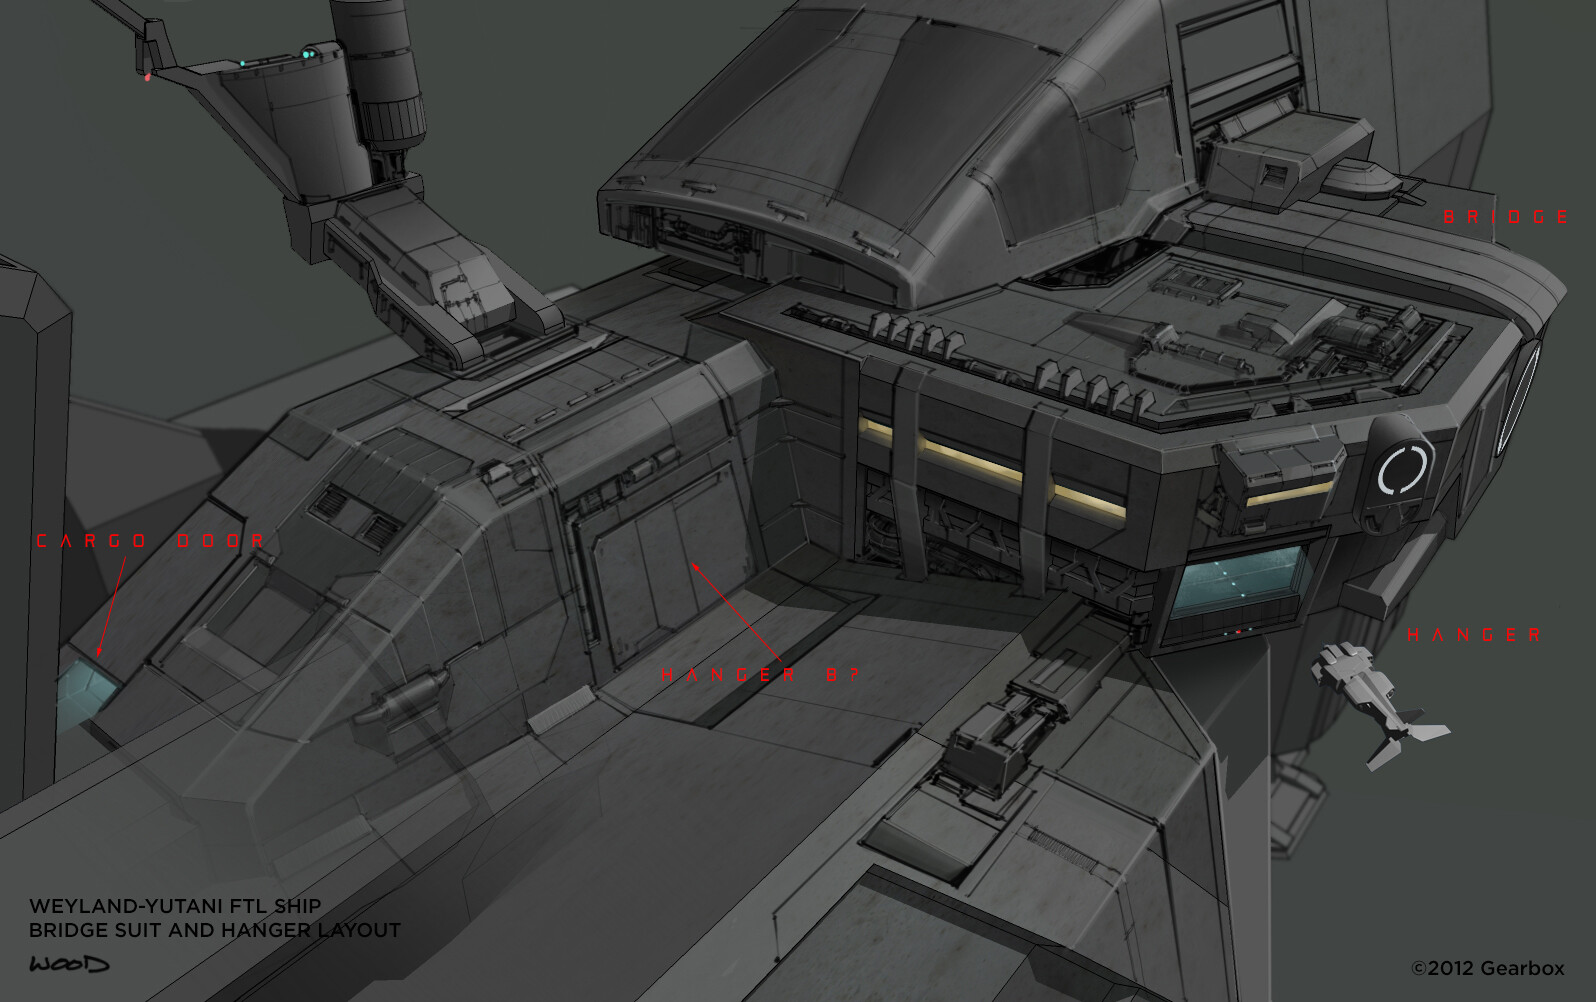 Detail of the bridge section of FTL ship